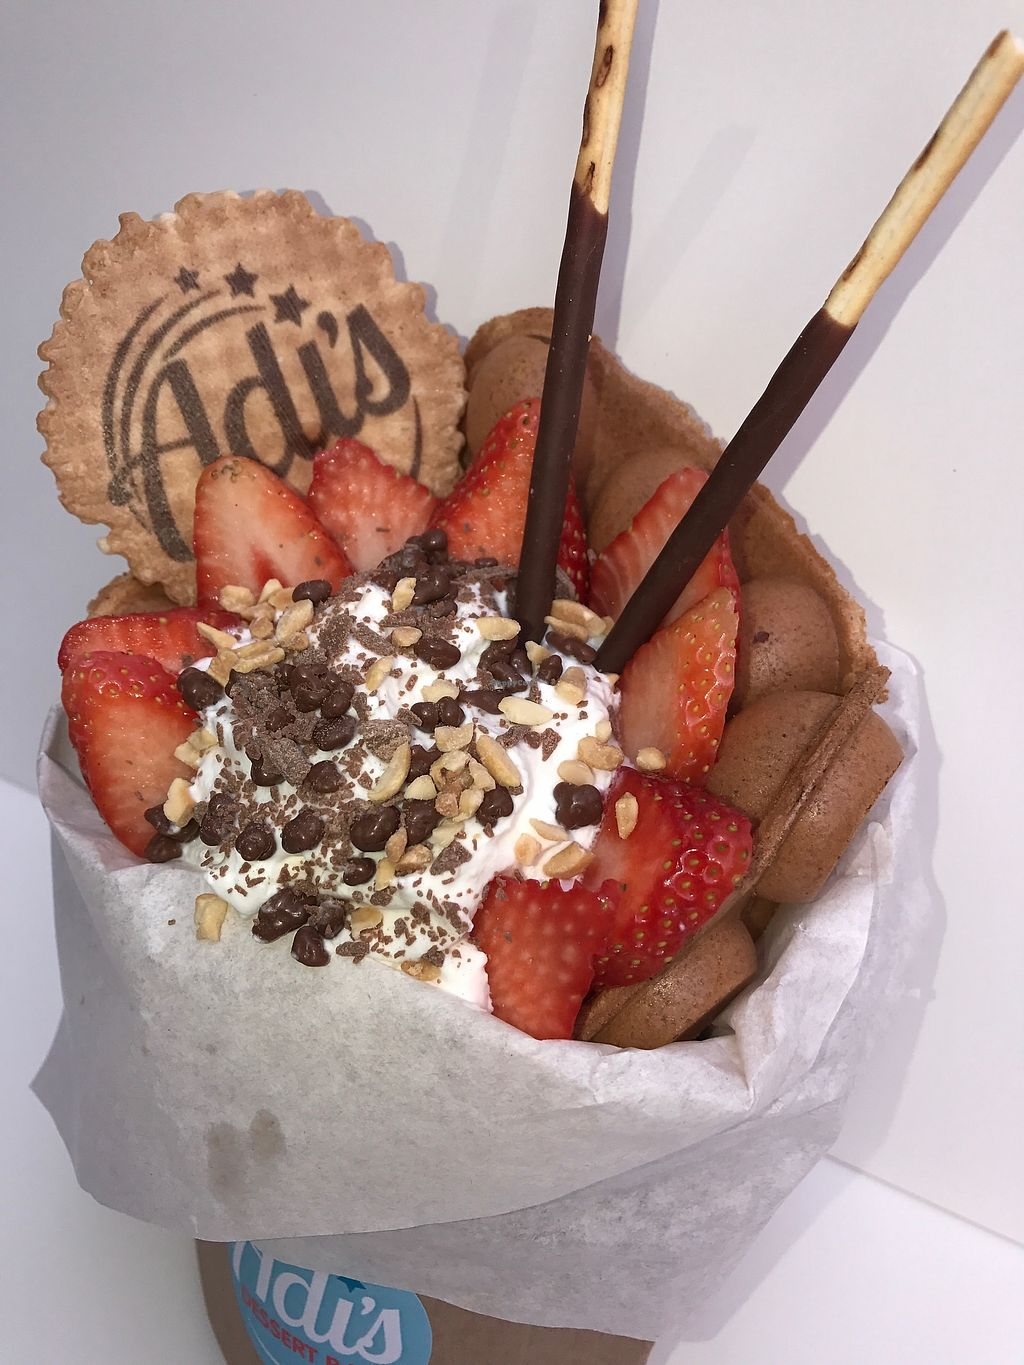 """Photo of Adi's's Dessert Bar  by <a href=""""/members/profile/KateBoucher"""">KateBoucher</a> <br/>Bubble waffle with fruits and ice cream  <br/> September 18, 2017  - <a href='/contact/abuse/image/101091/305553'>Report</a>"""